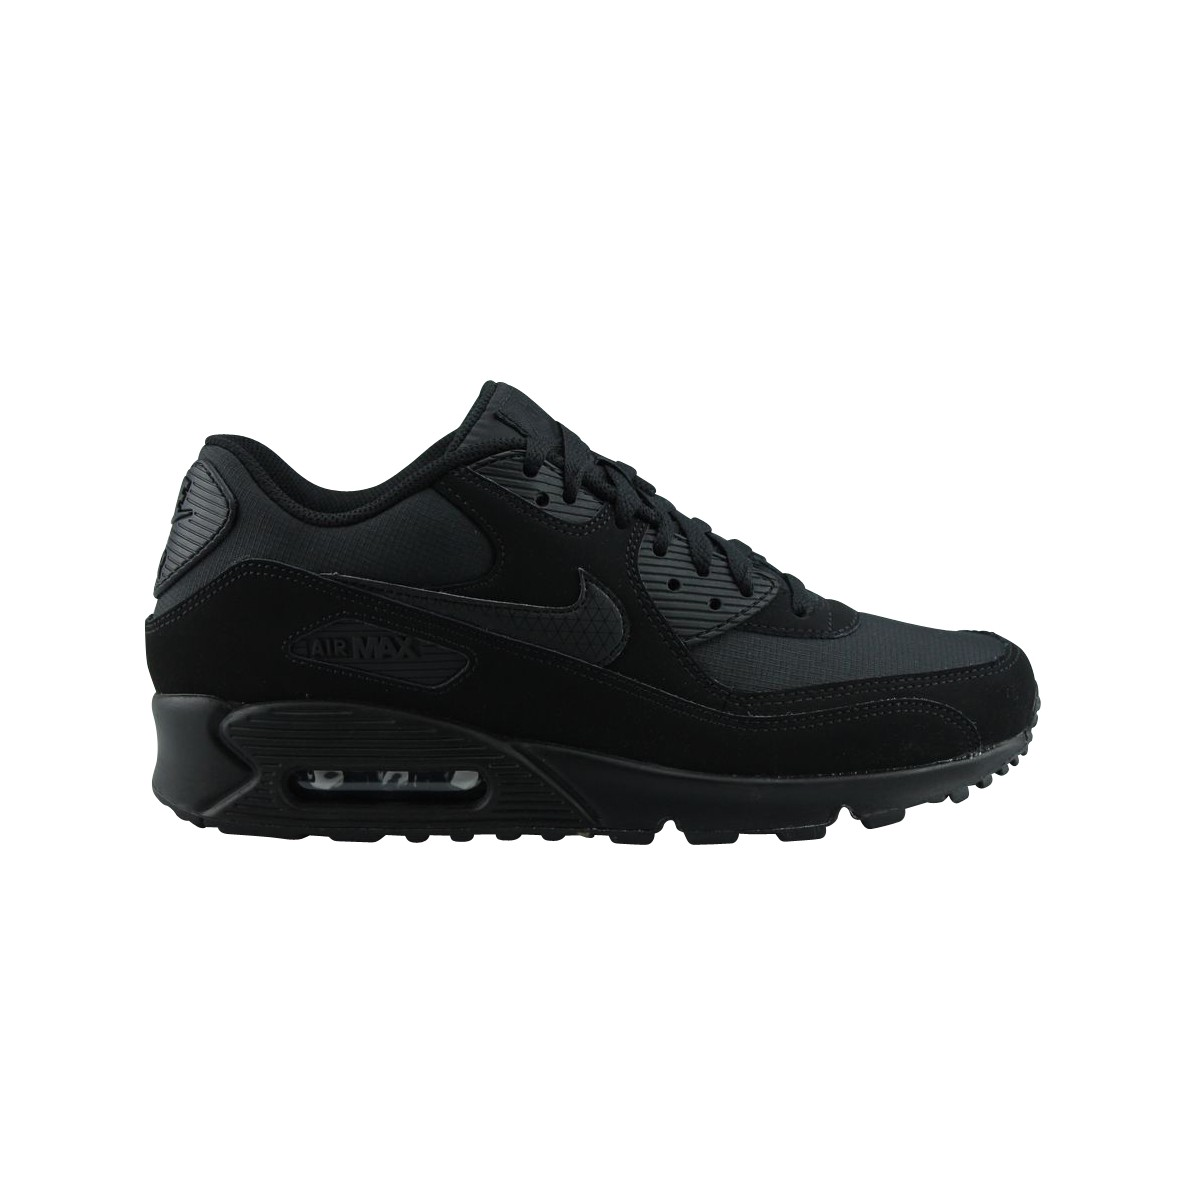 paniers air max 90 nike femme womens nike air max navigateur. Black Bedroom Furniture Sets. Home Design Ideas